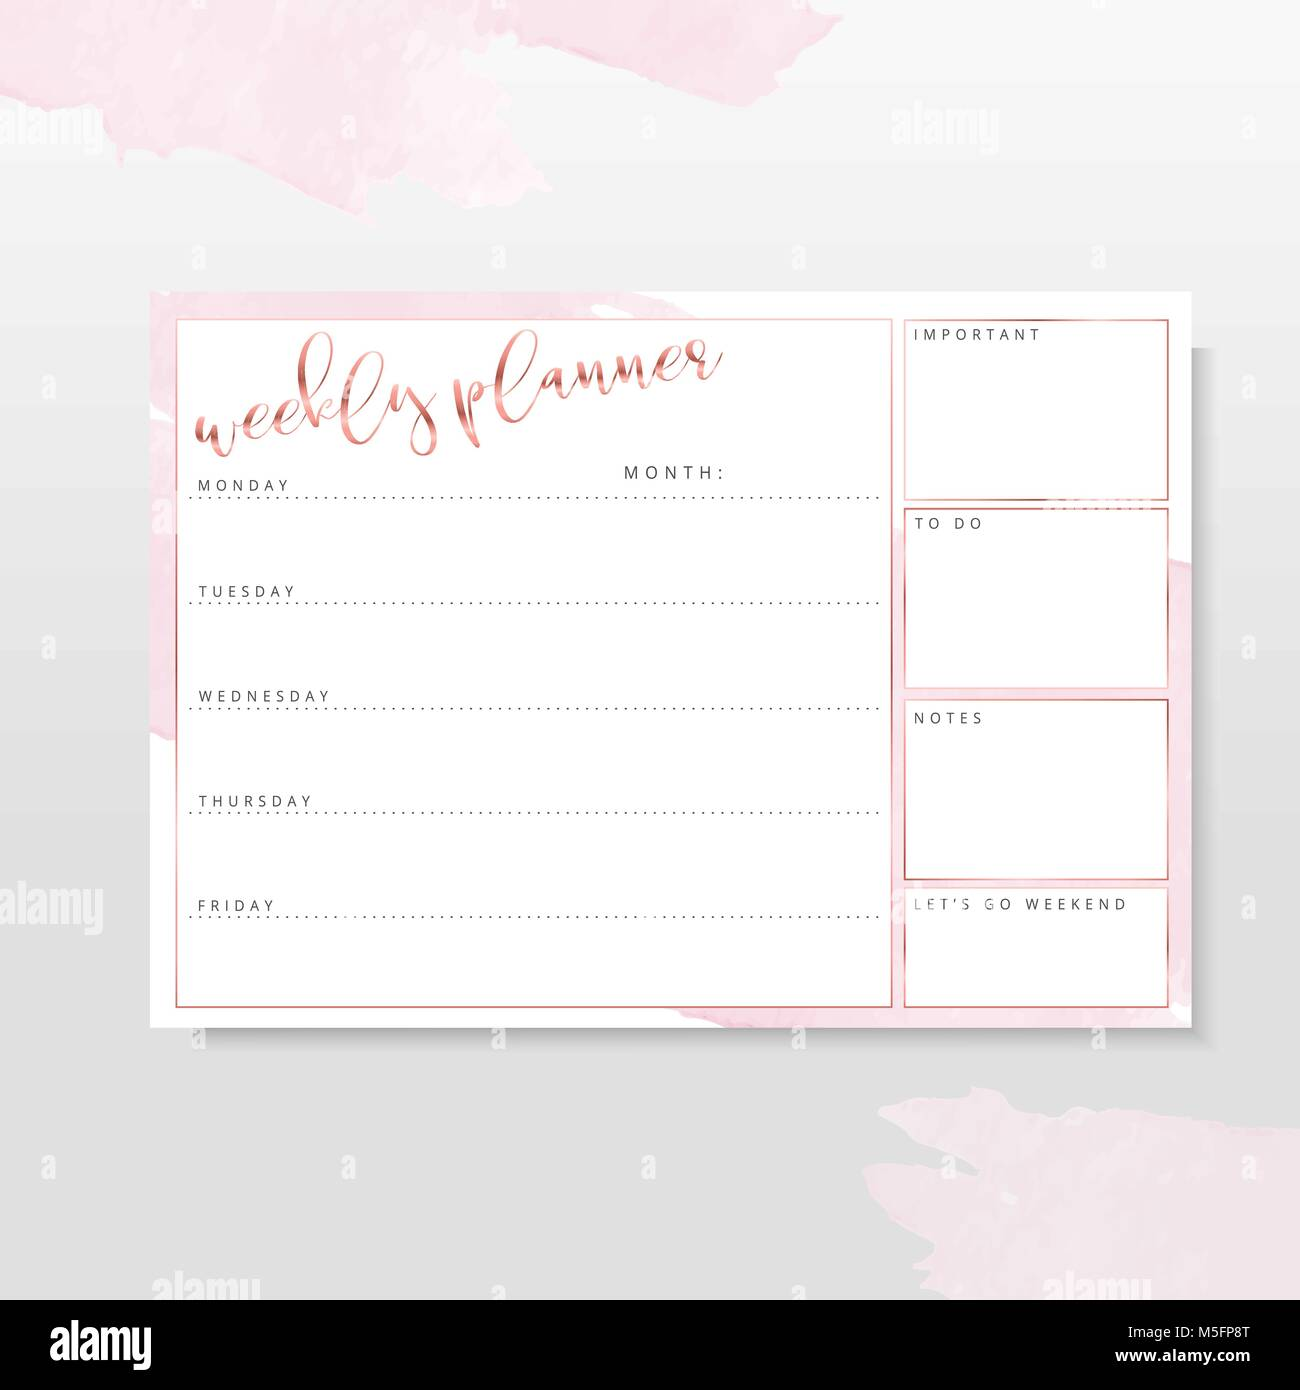 rose gold weekly planne stationery organizer for daily plans